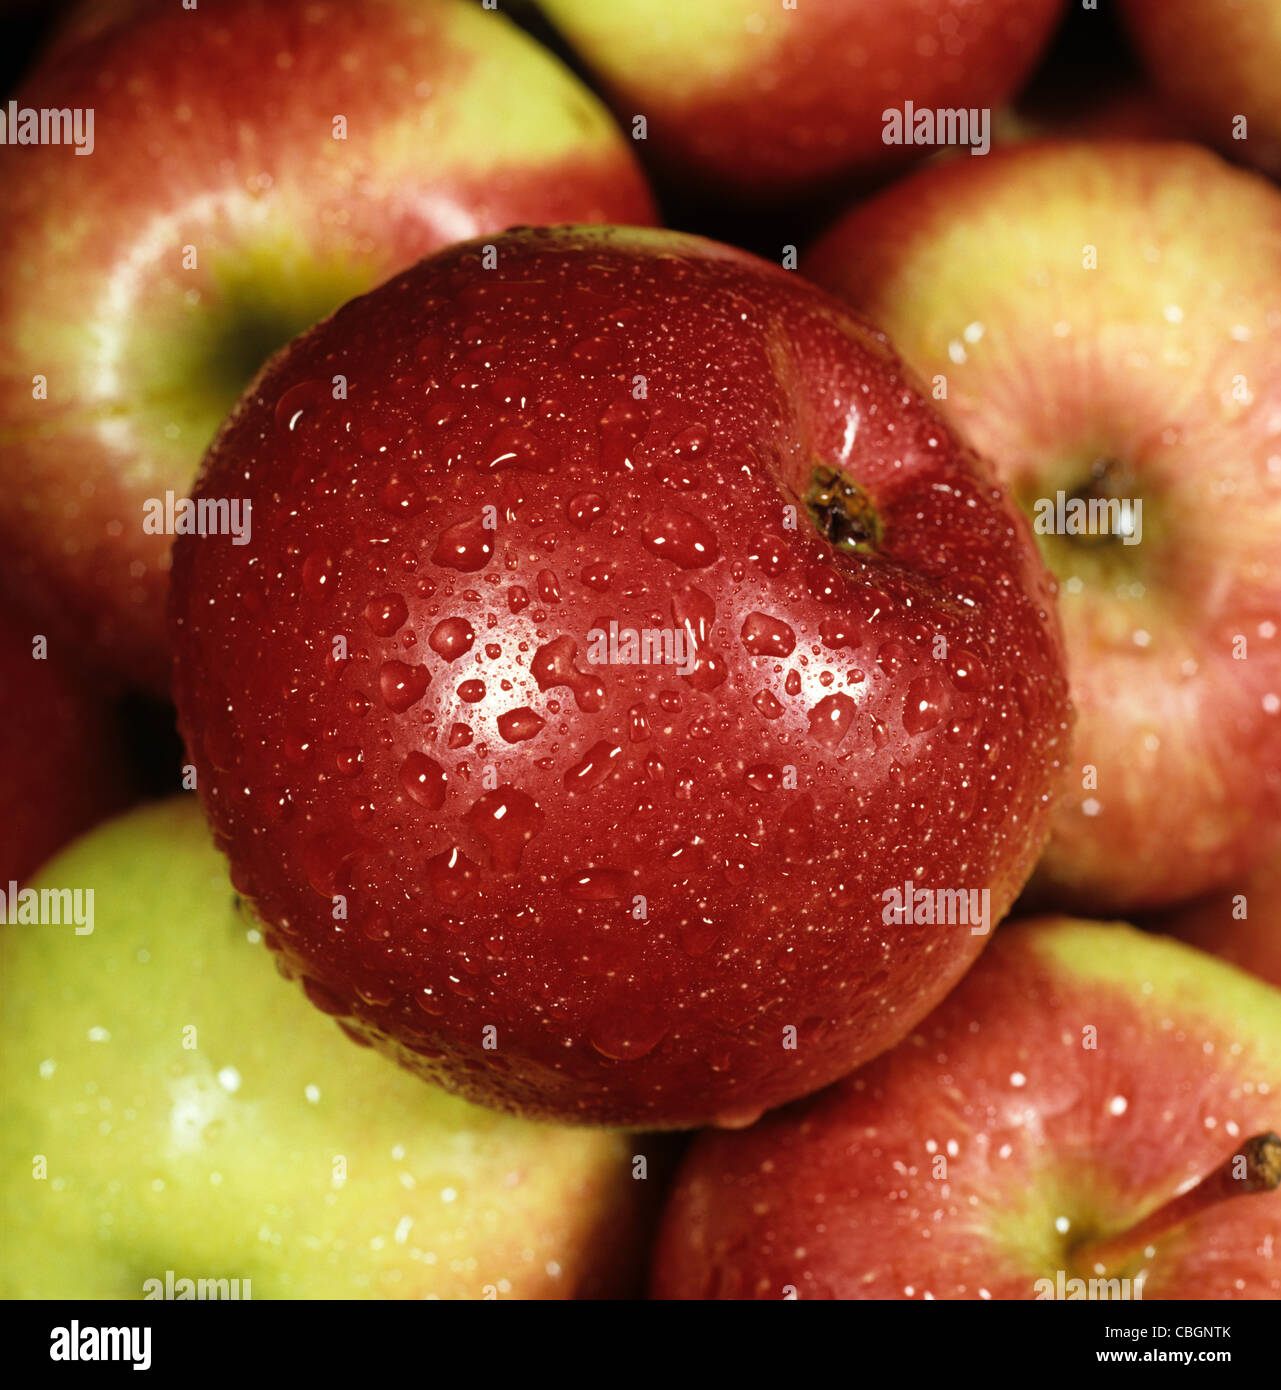 Apple fruit, a Canadian variety, ex shop, with water droplets - Stock Image